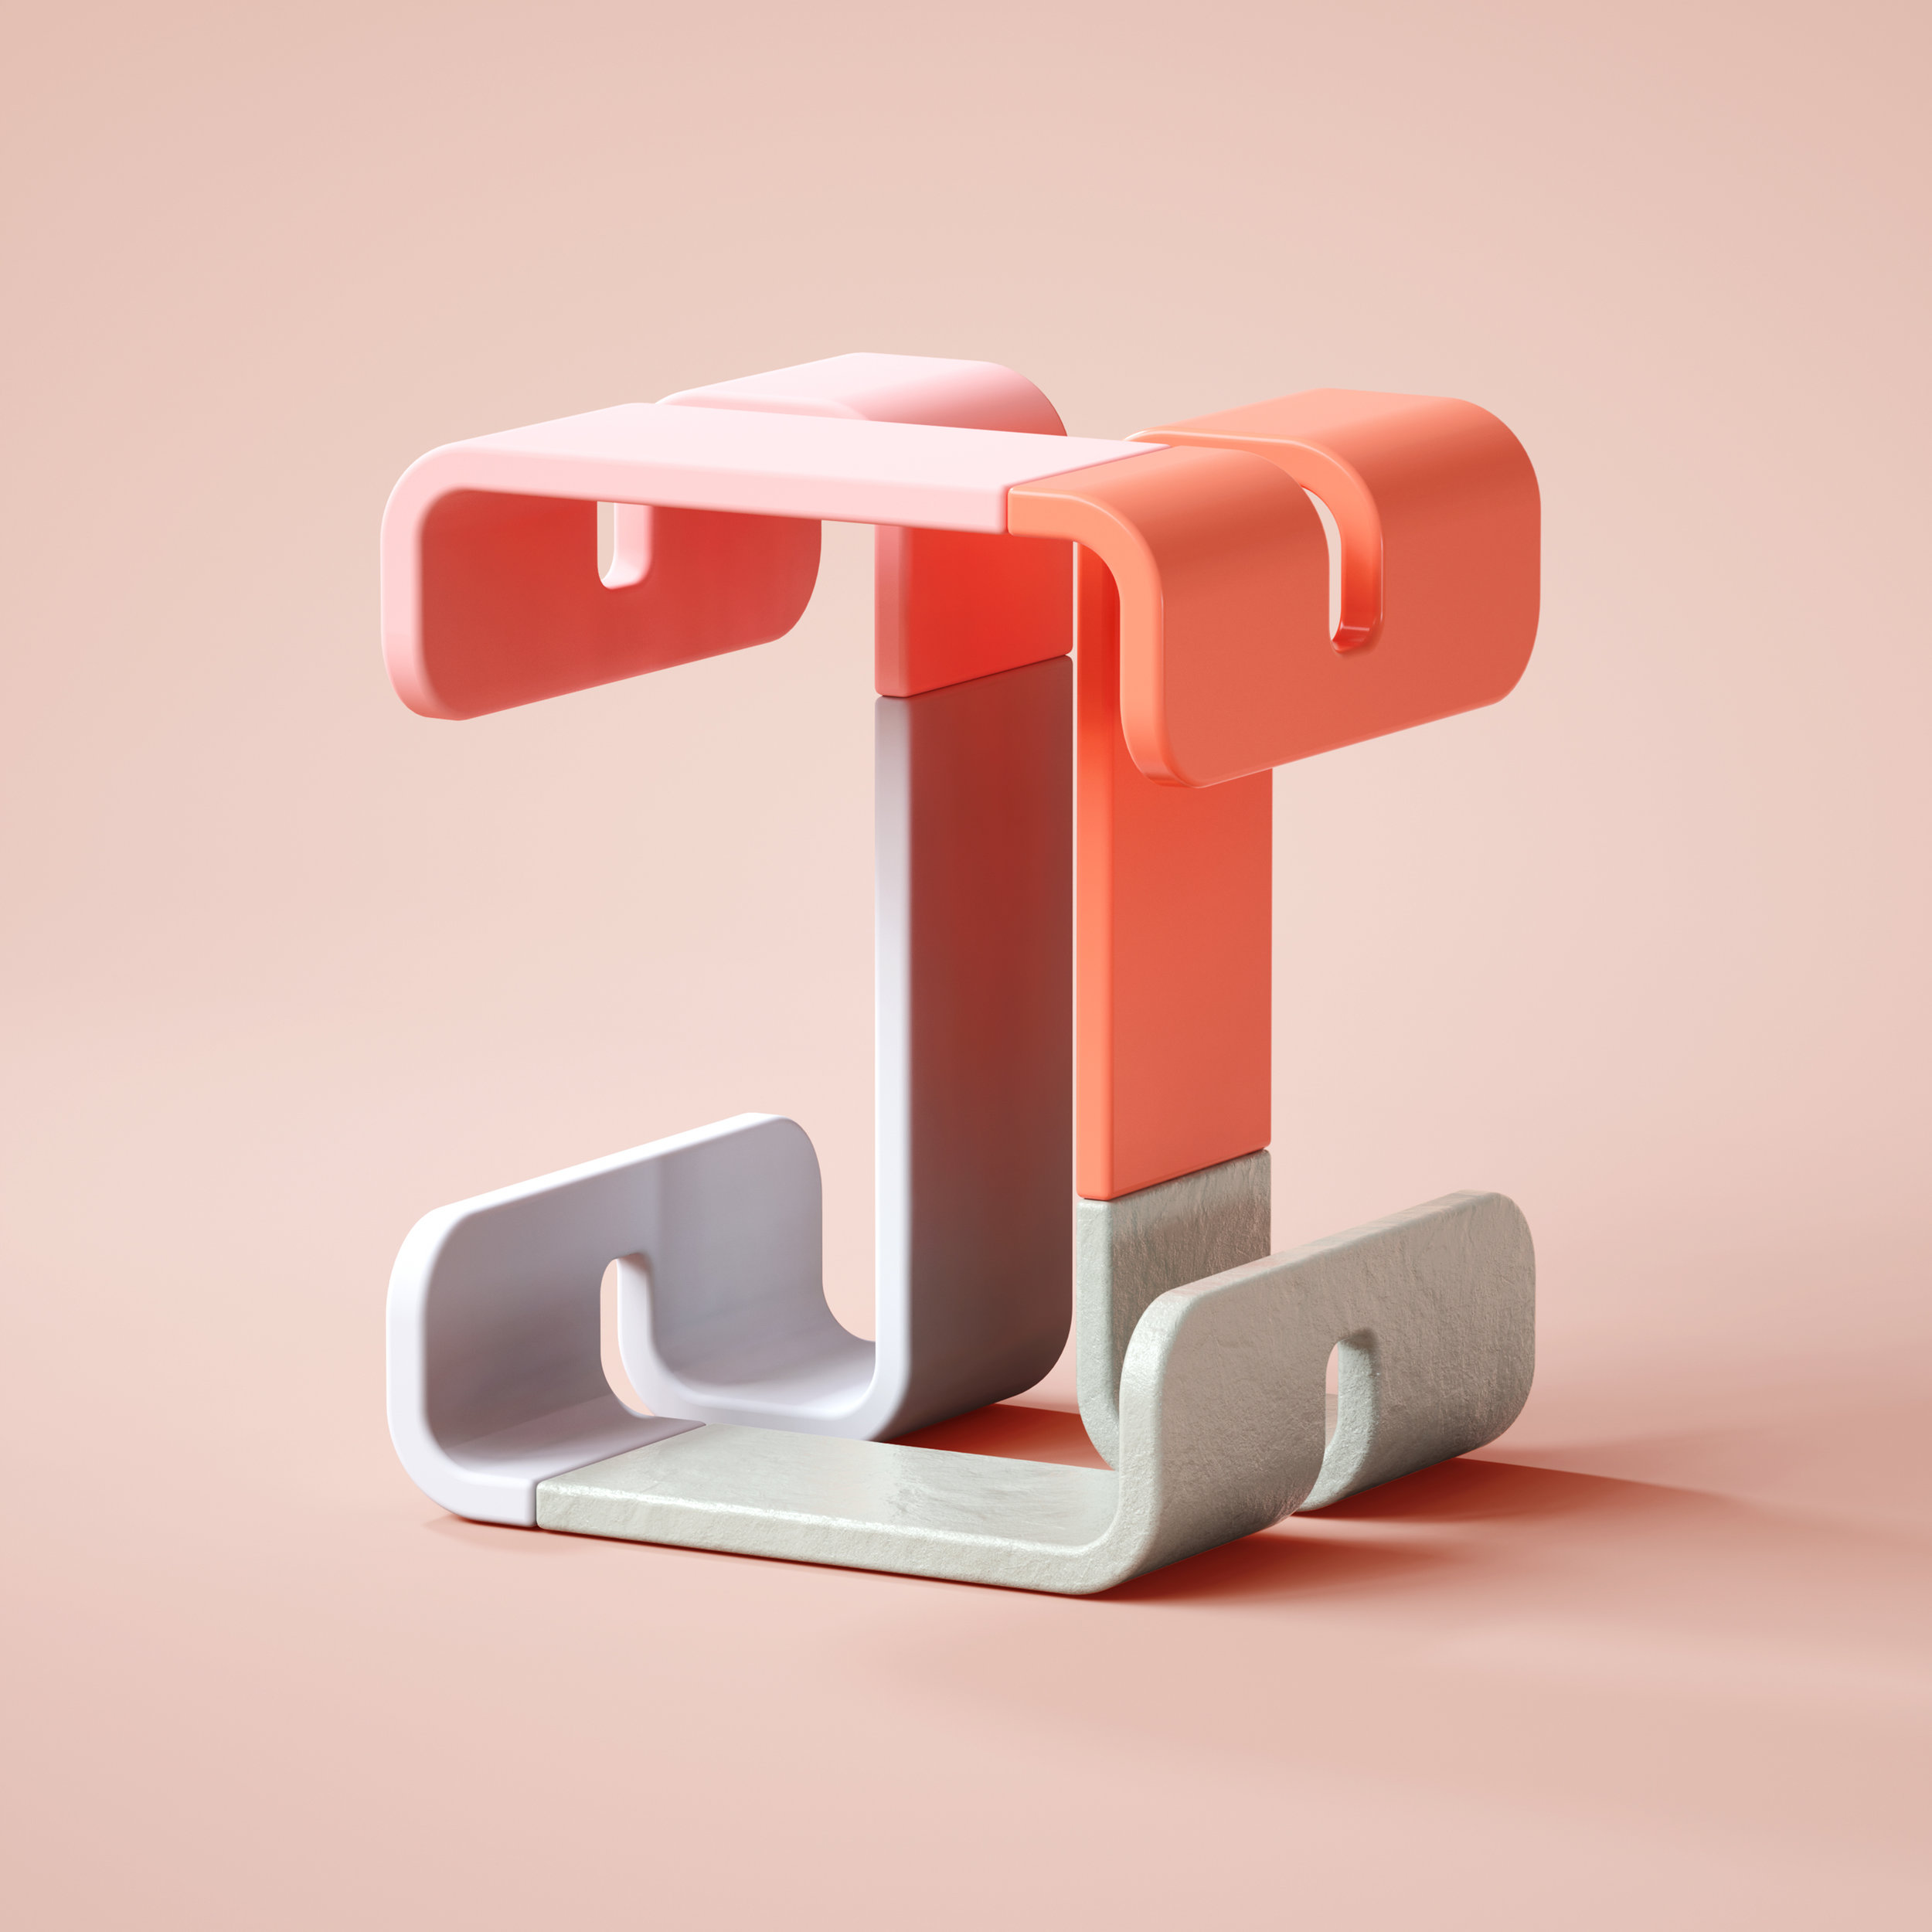 36 Days of Type 2019 - 3D Typeform letter I visual.